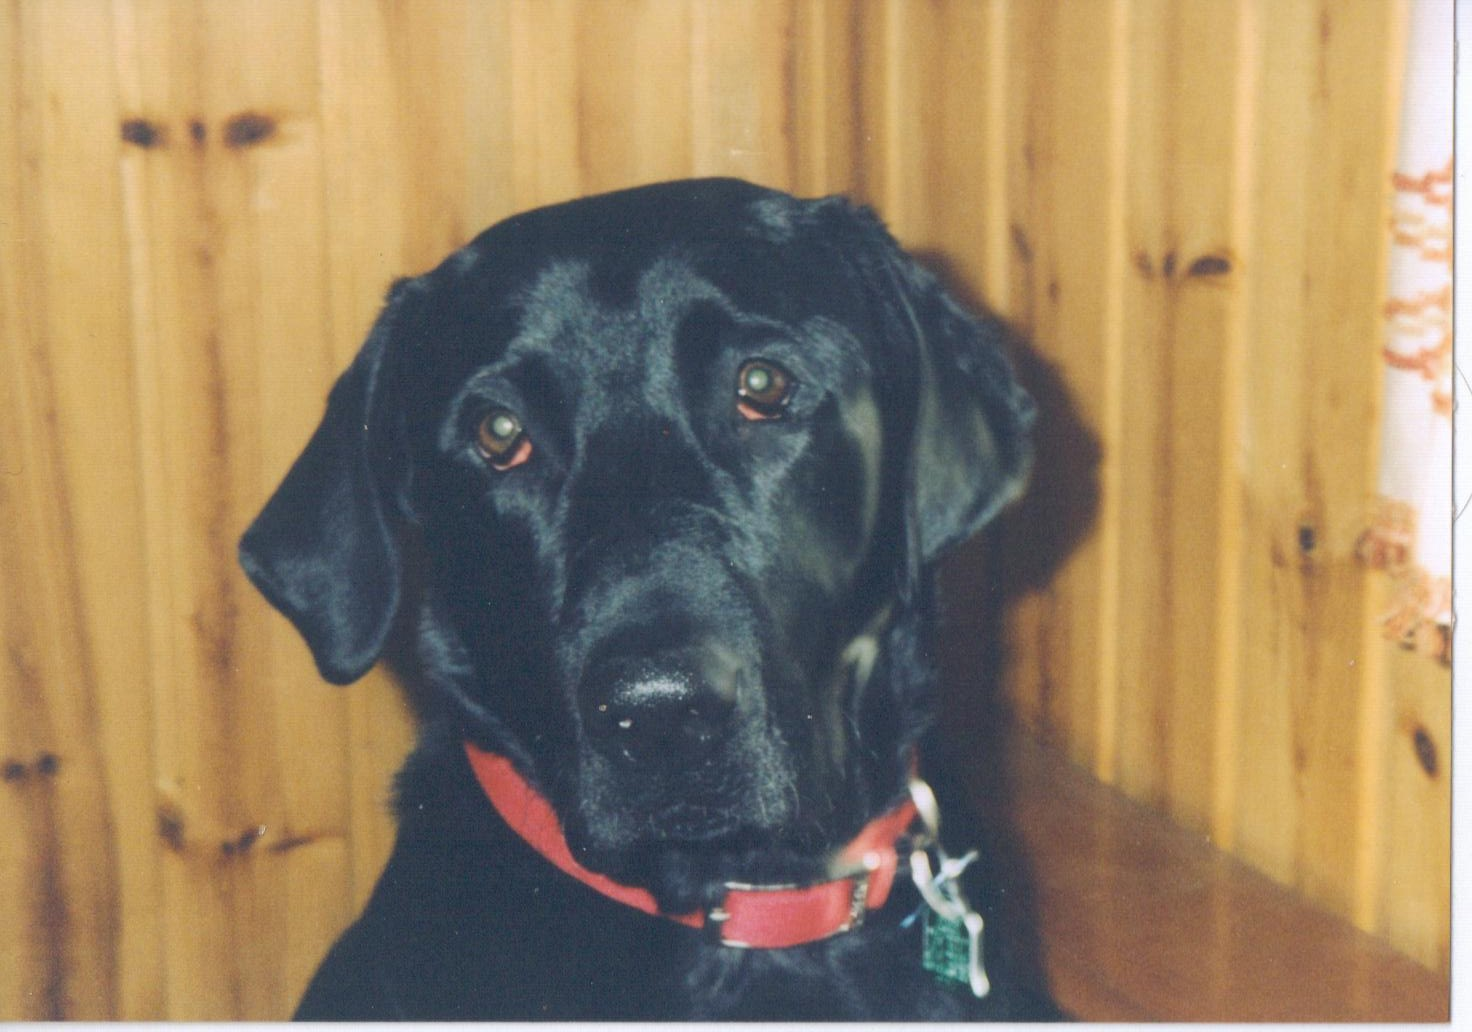 Our Black Labrador Retriever Willy